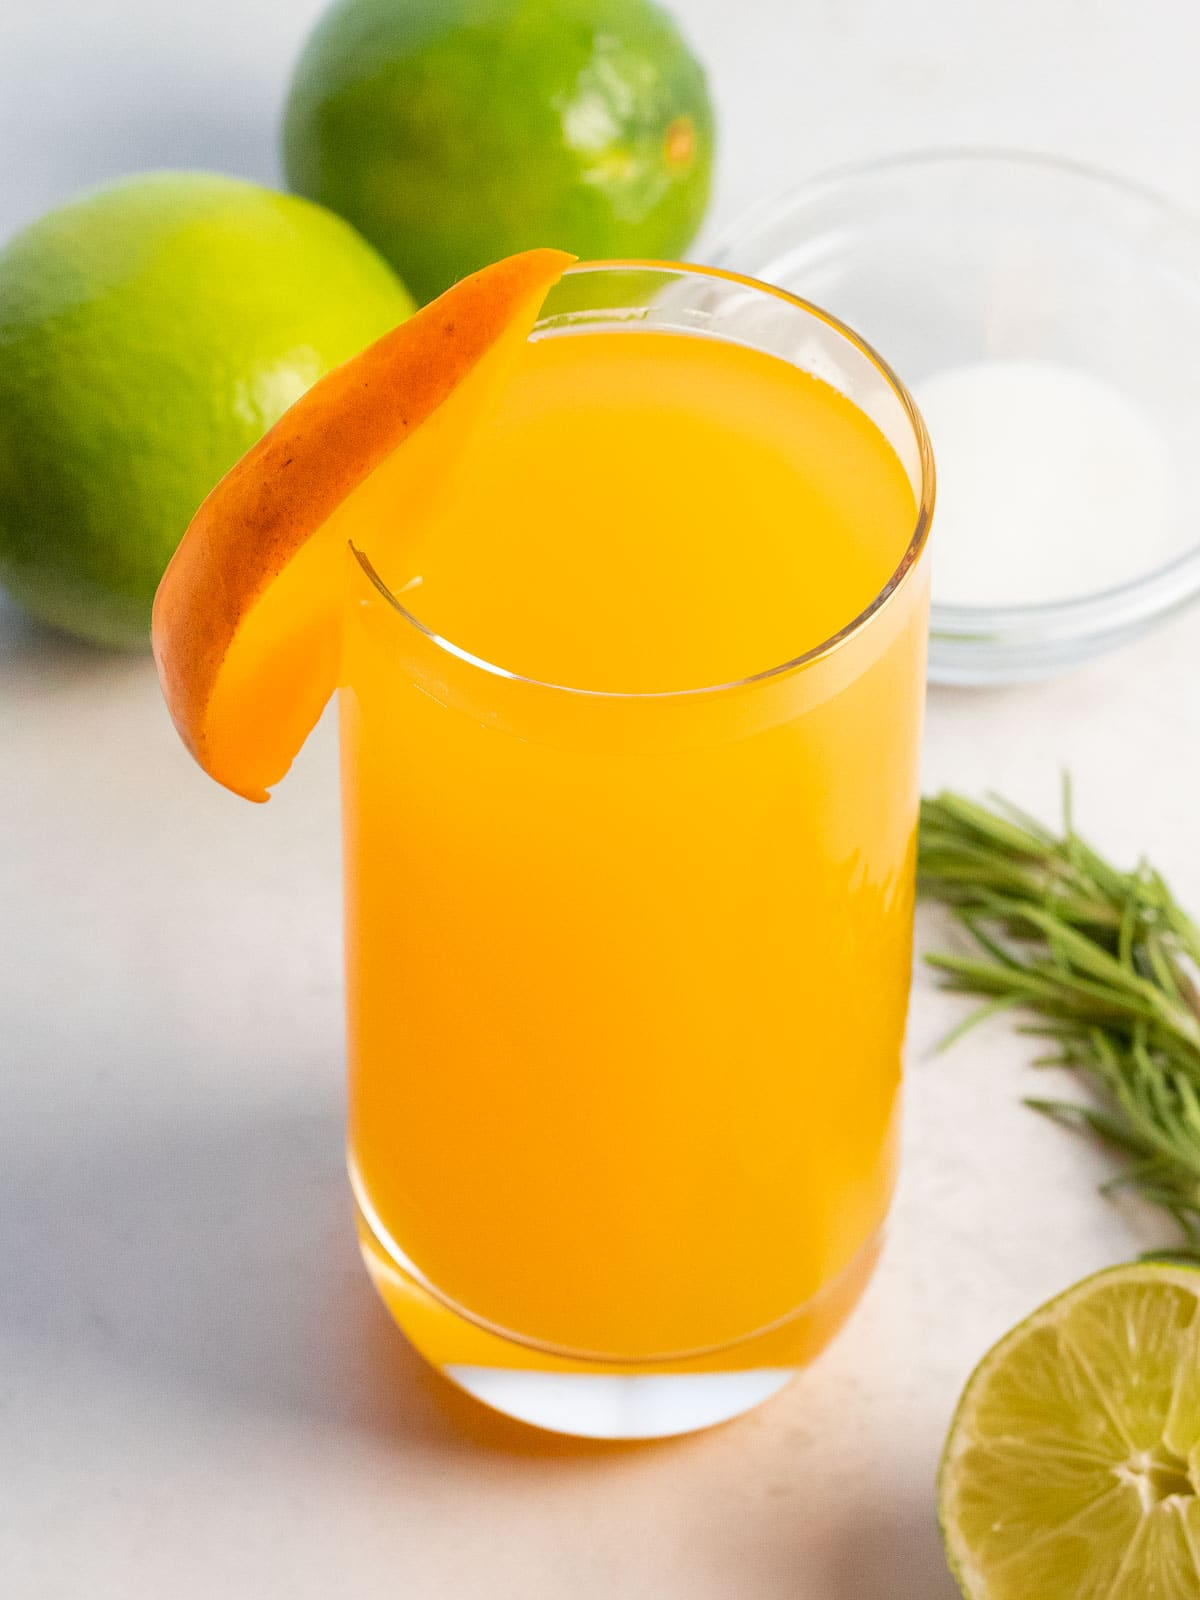 glass of mango agua fresca with a slice of mango garnish with limes